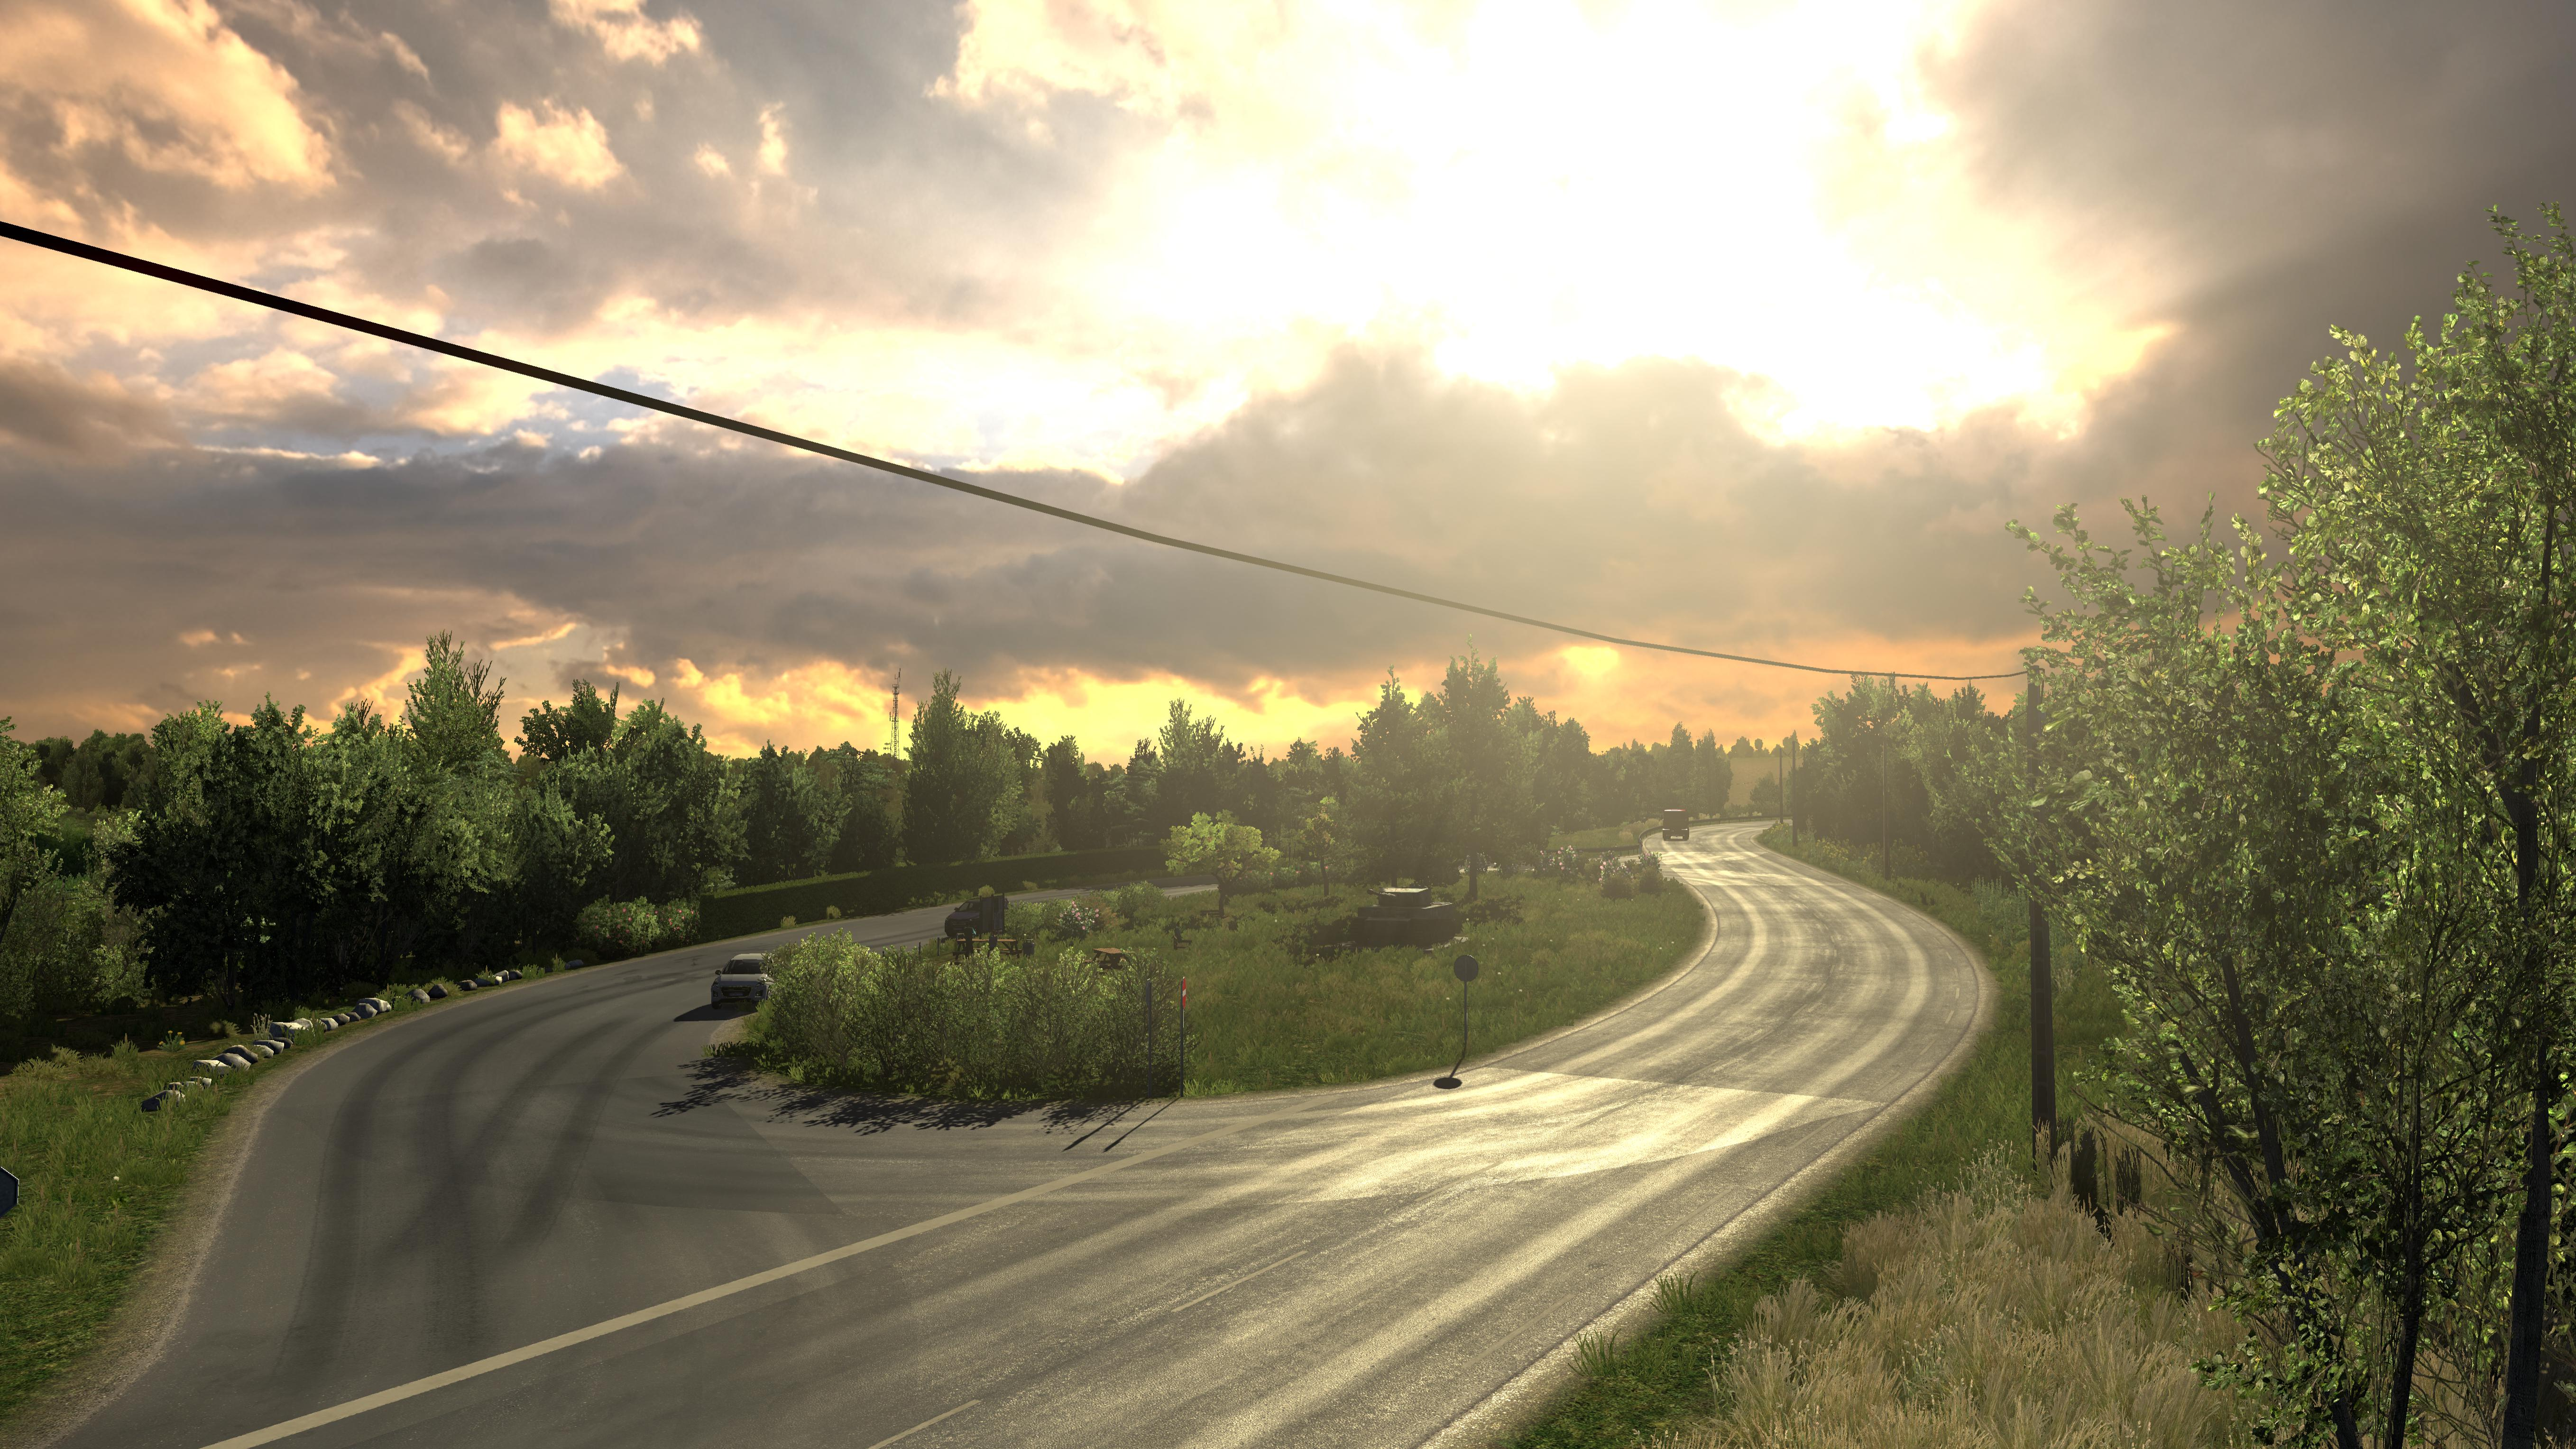 ETS2 - Natura Lux - Enhanced Graphics and Weather Mod (1.36.x)